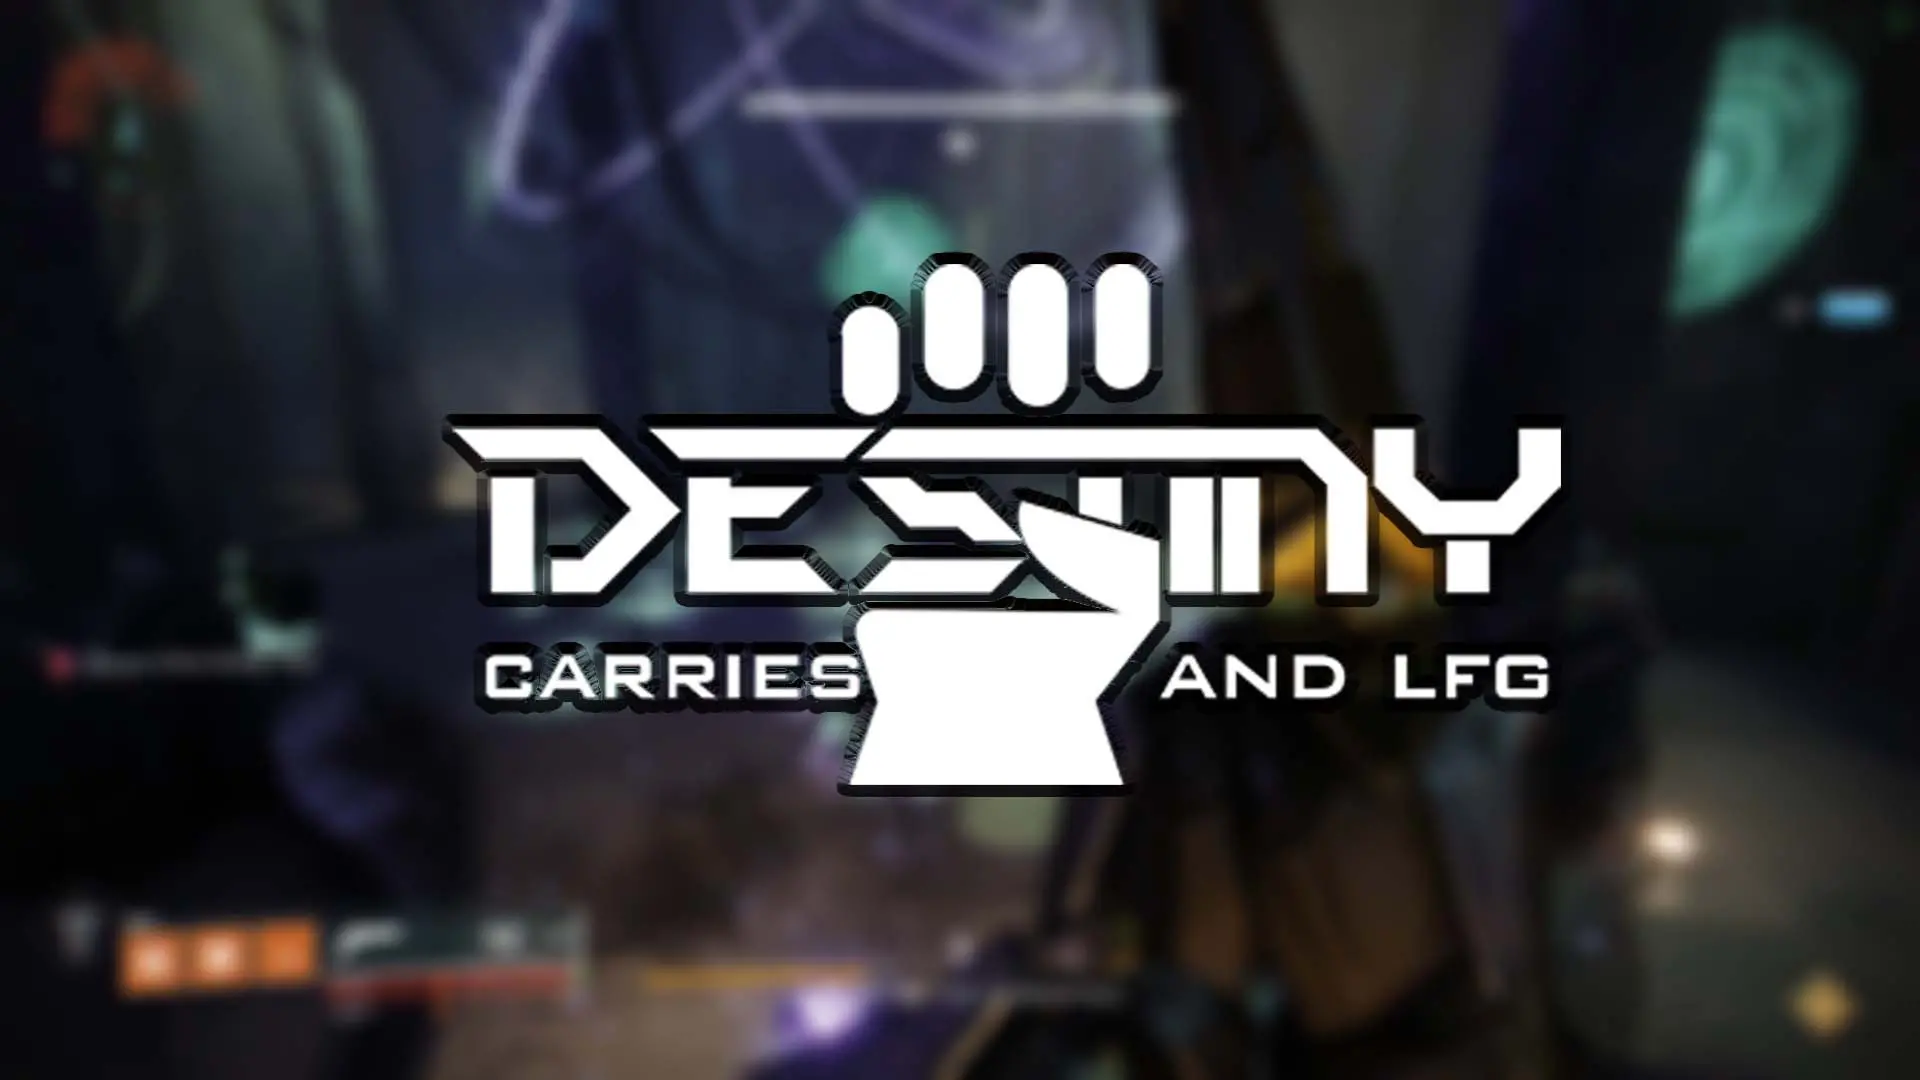 Destiny Carries The #1 Destiny Carries and LFG Boosting Service